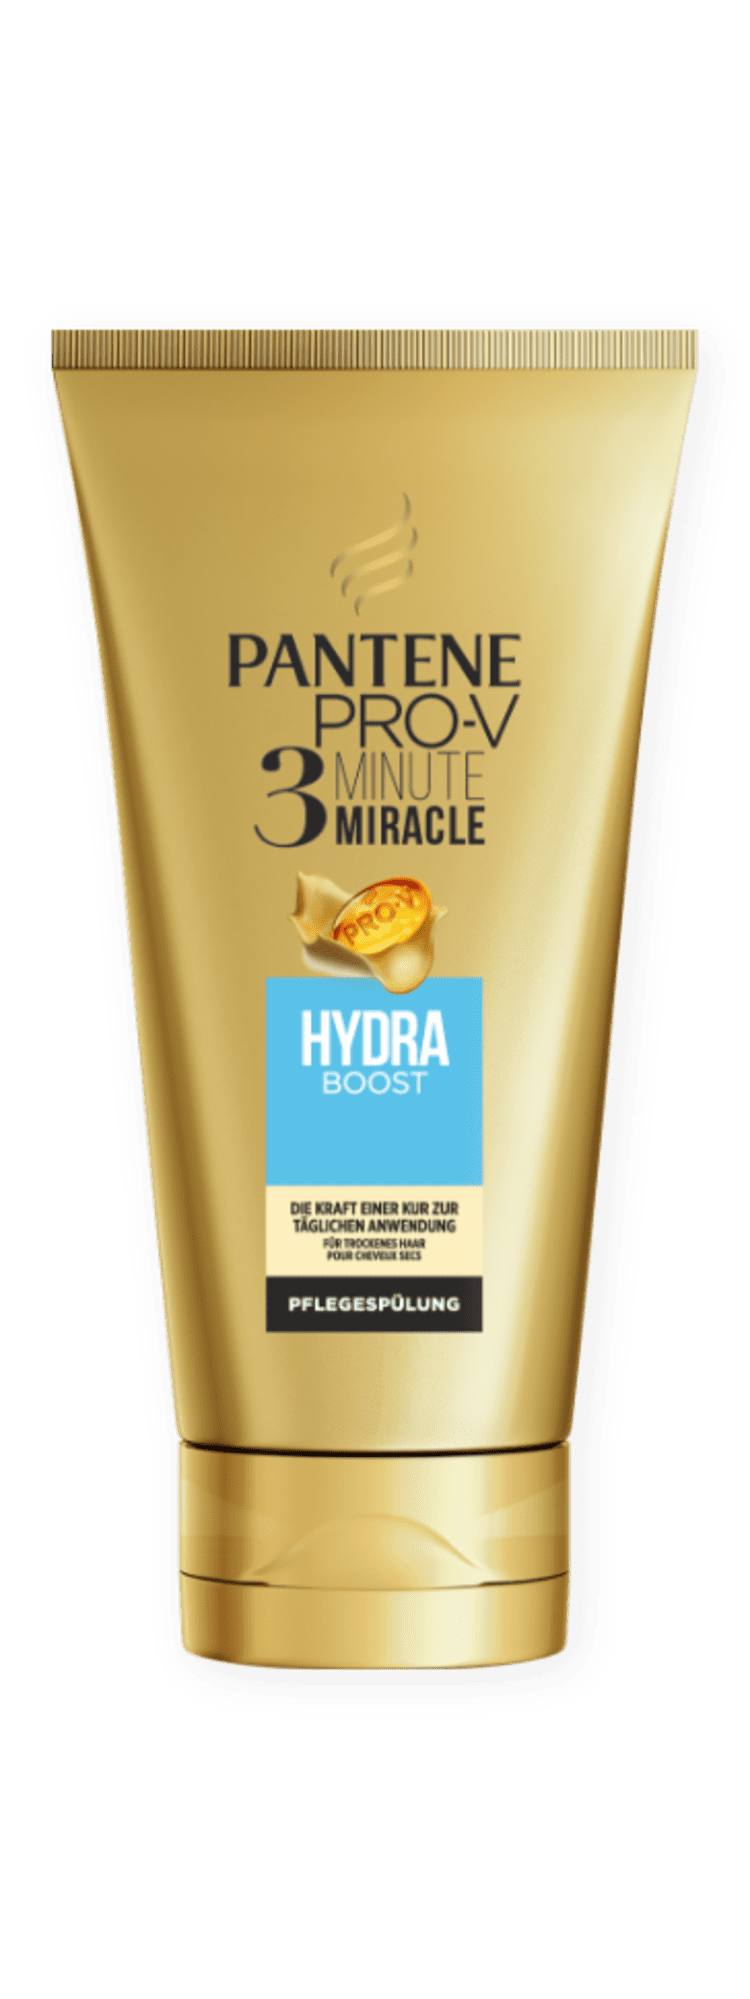 Hydra Boost 3 Minute Miracle Pflegespülung